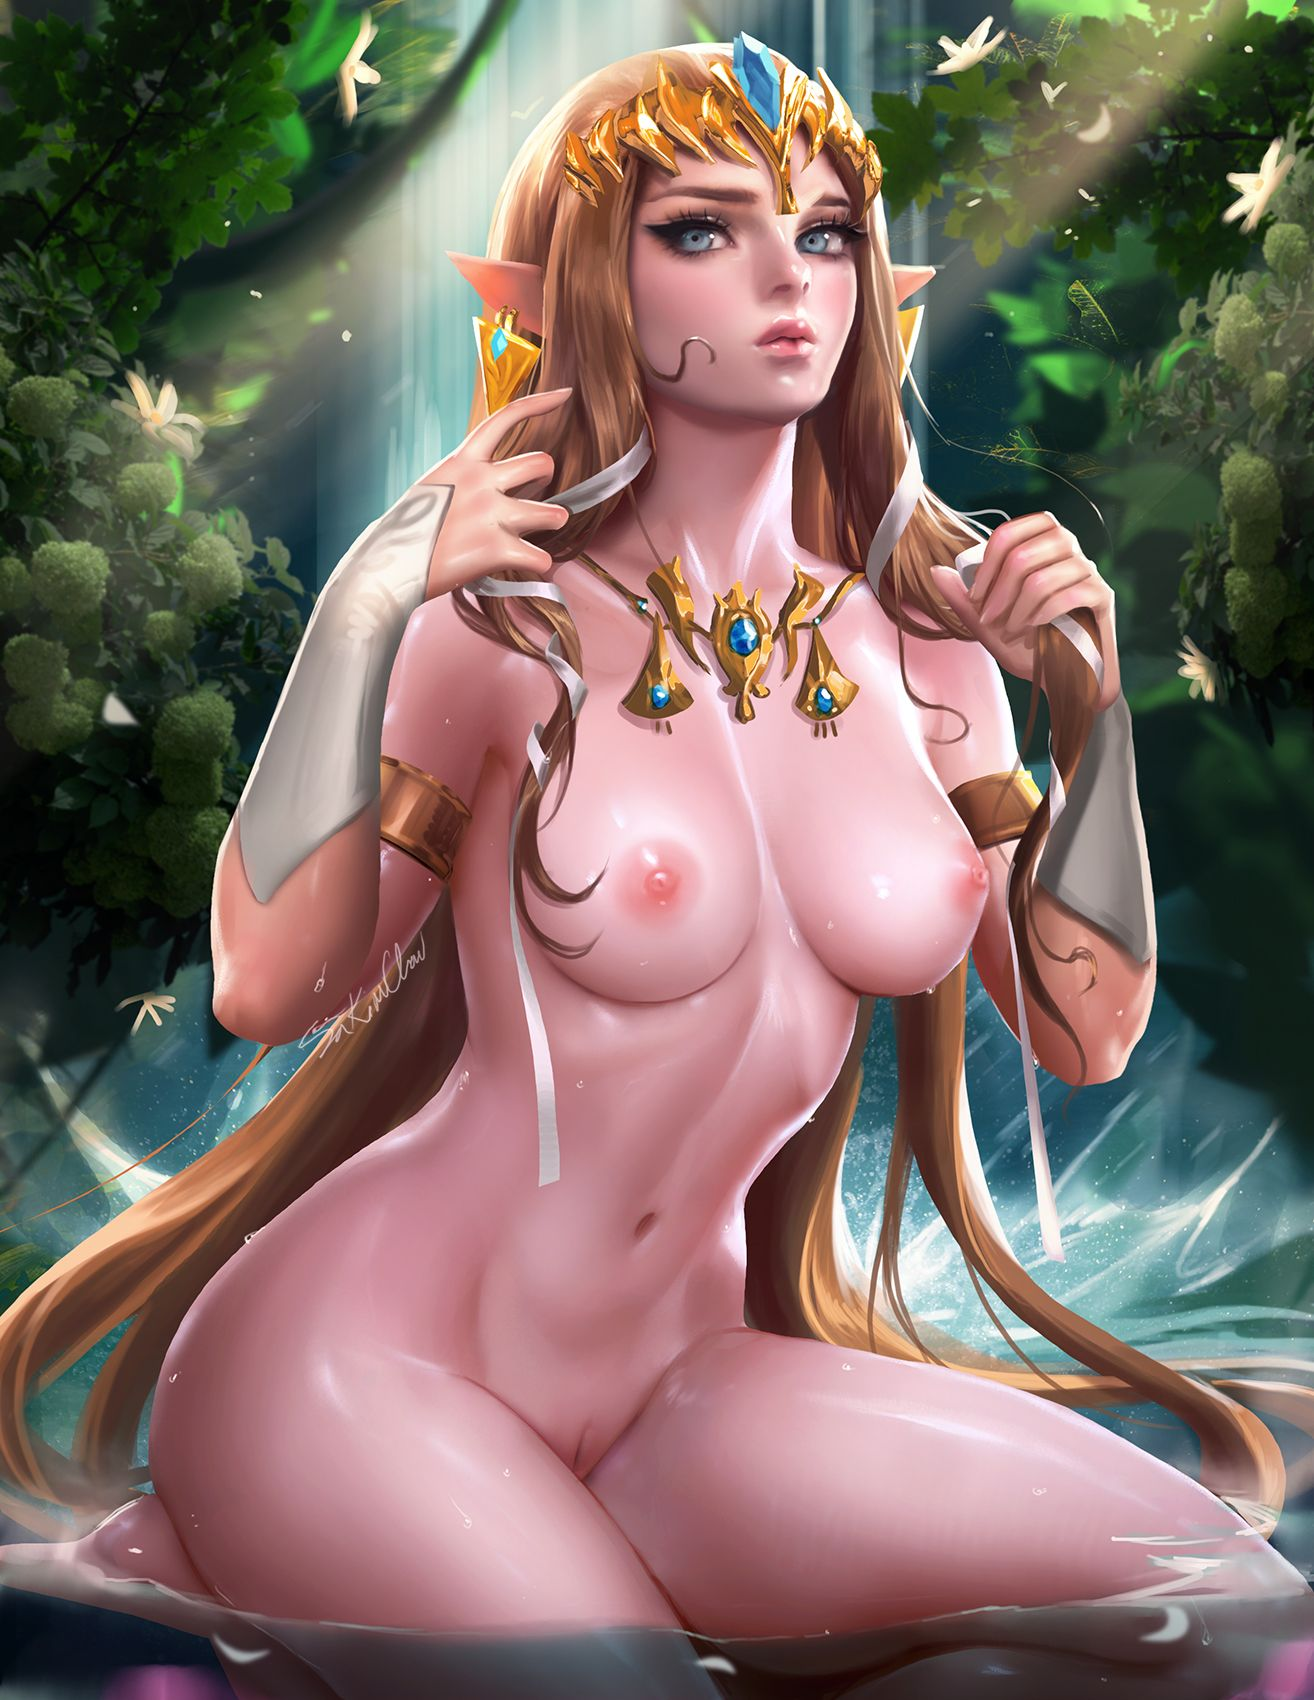 twilight princess girls nude